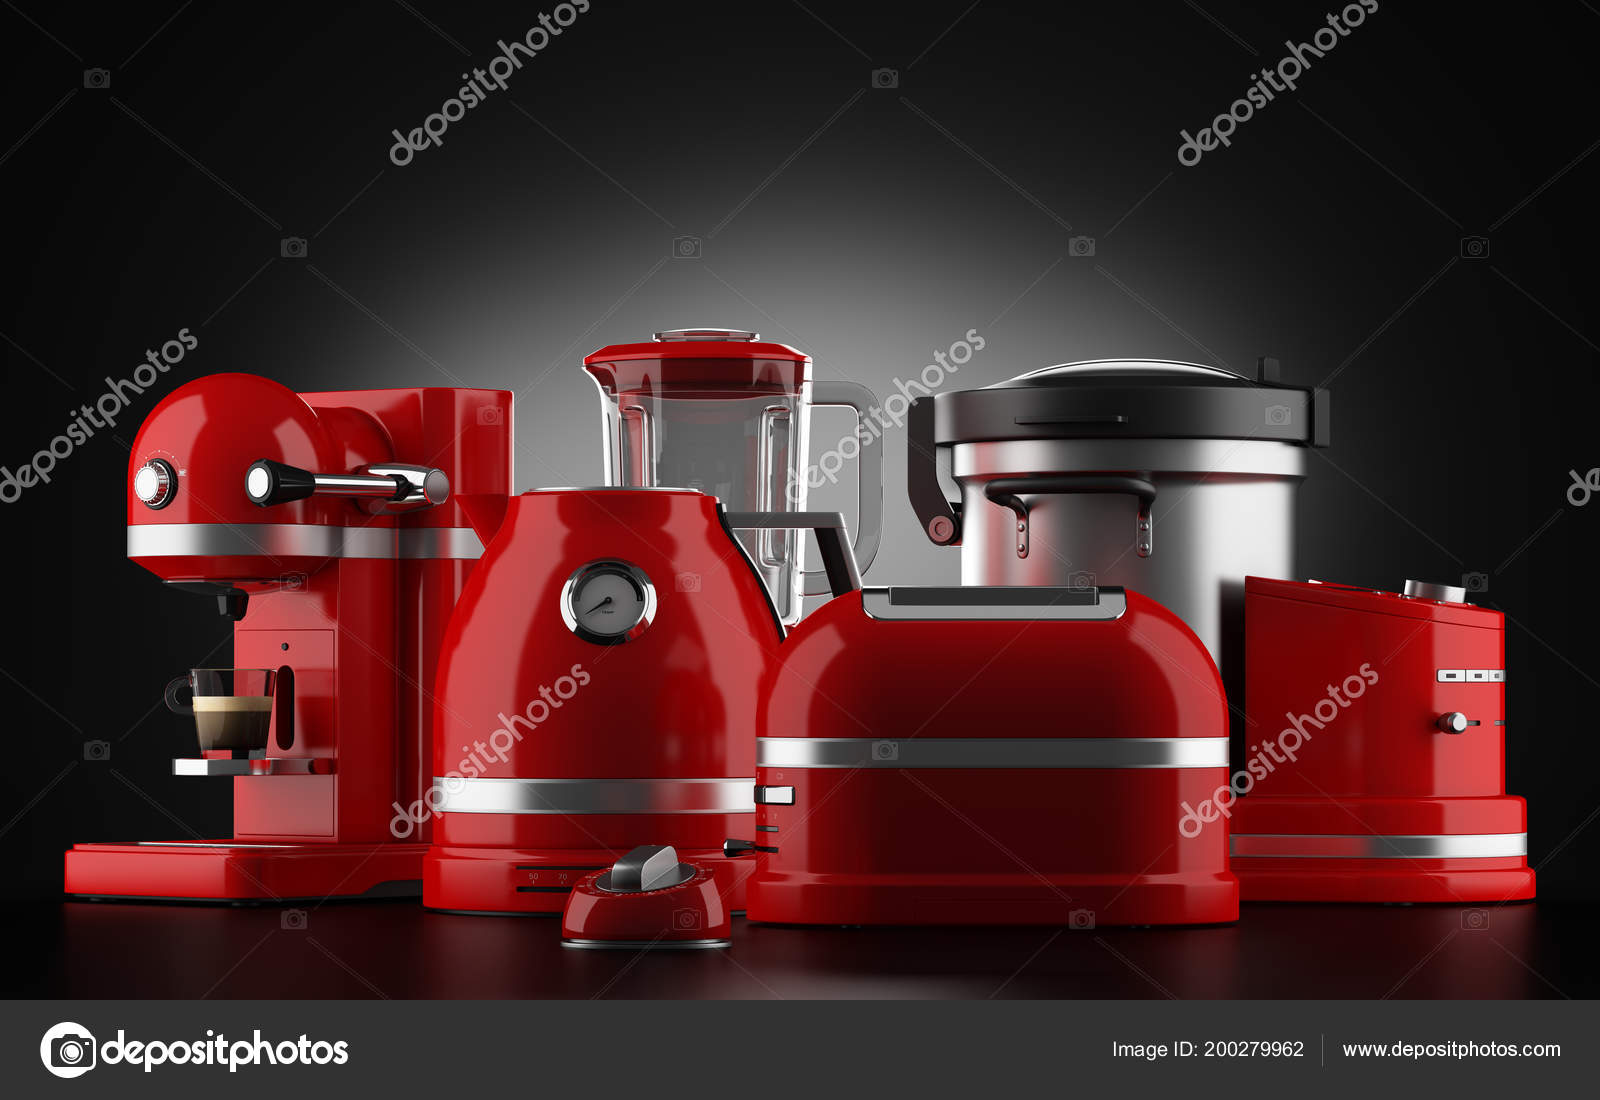 Red Kitchen Appliances Black Background Illustration — Stock ...